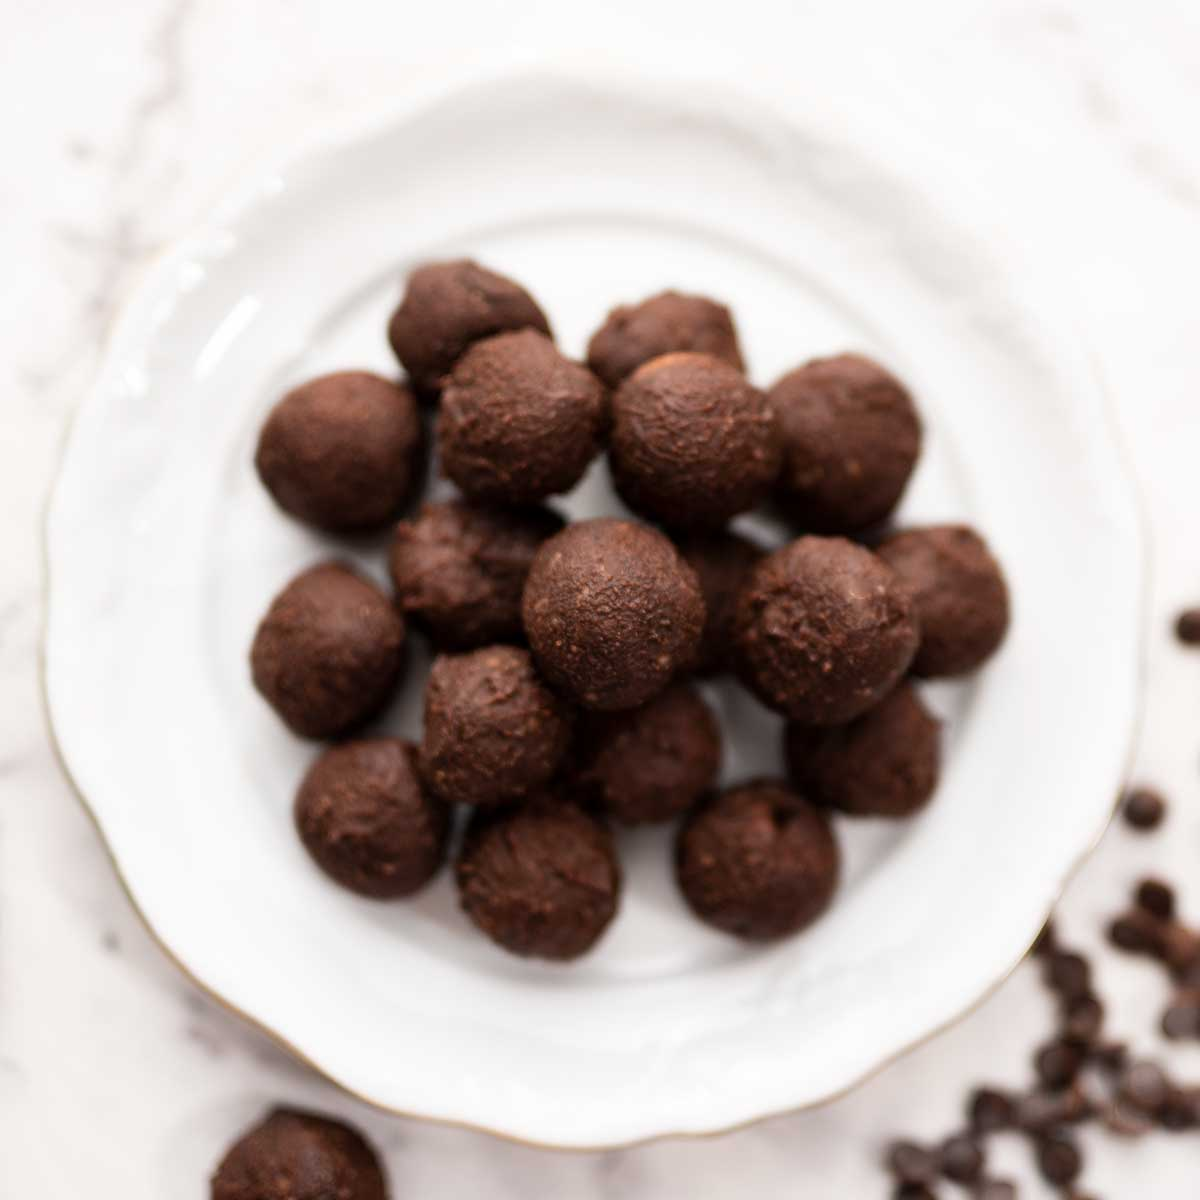 Image shows a white plate piled wiith keto brownie fat bomb balls